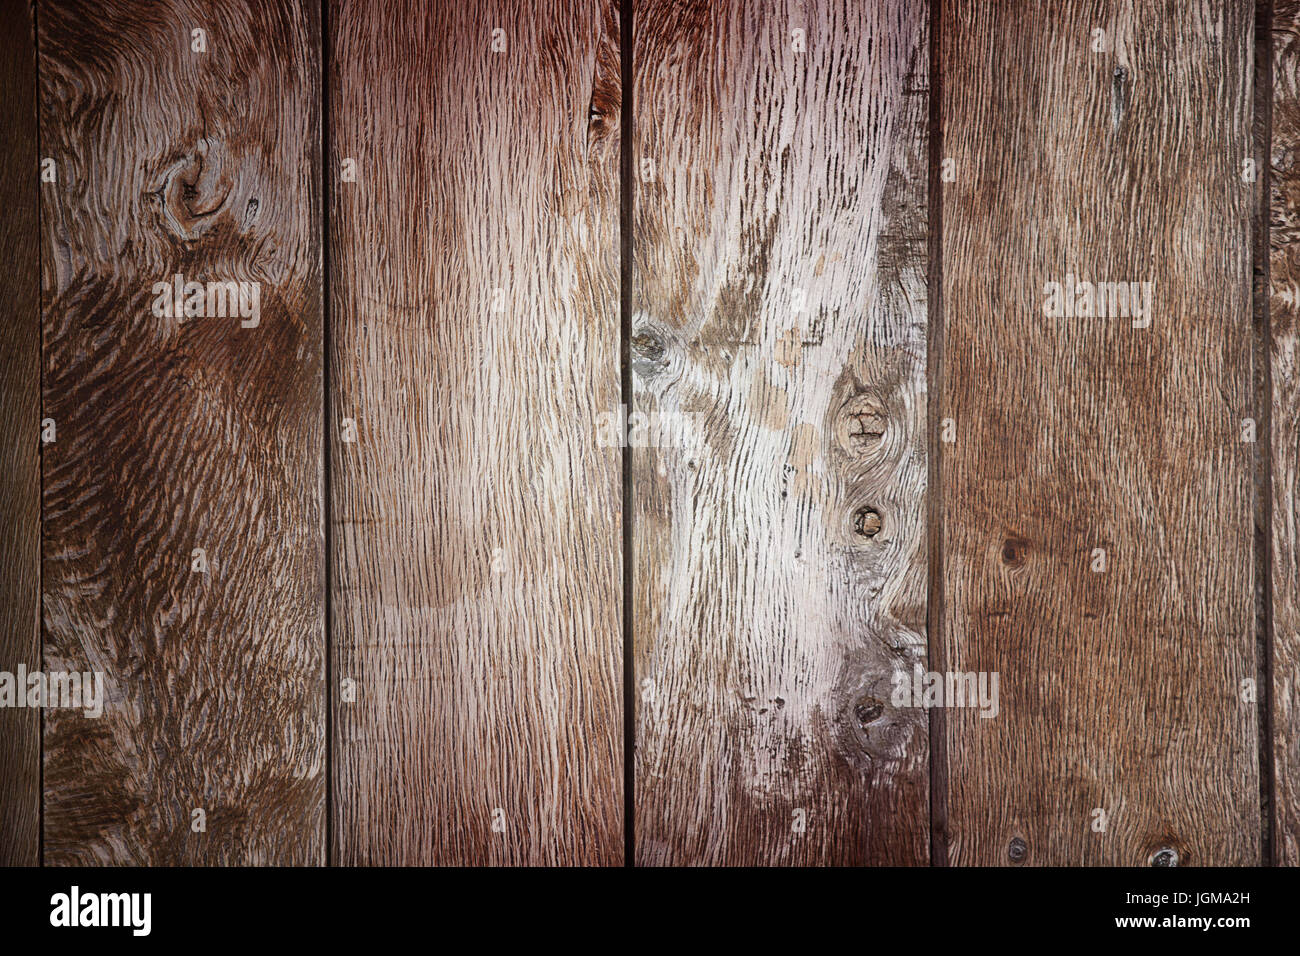 wood planks, wooden plank texture or background - Stock Image